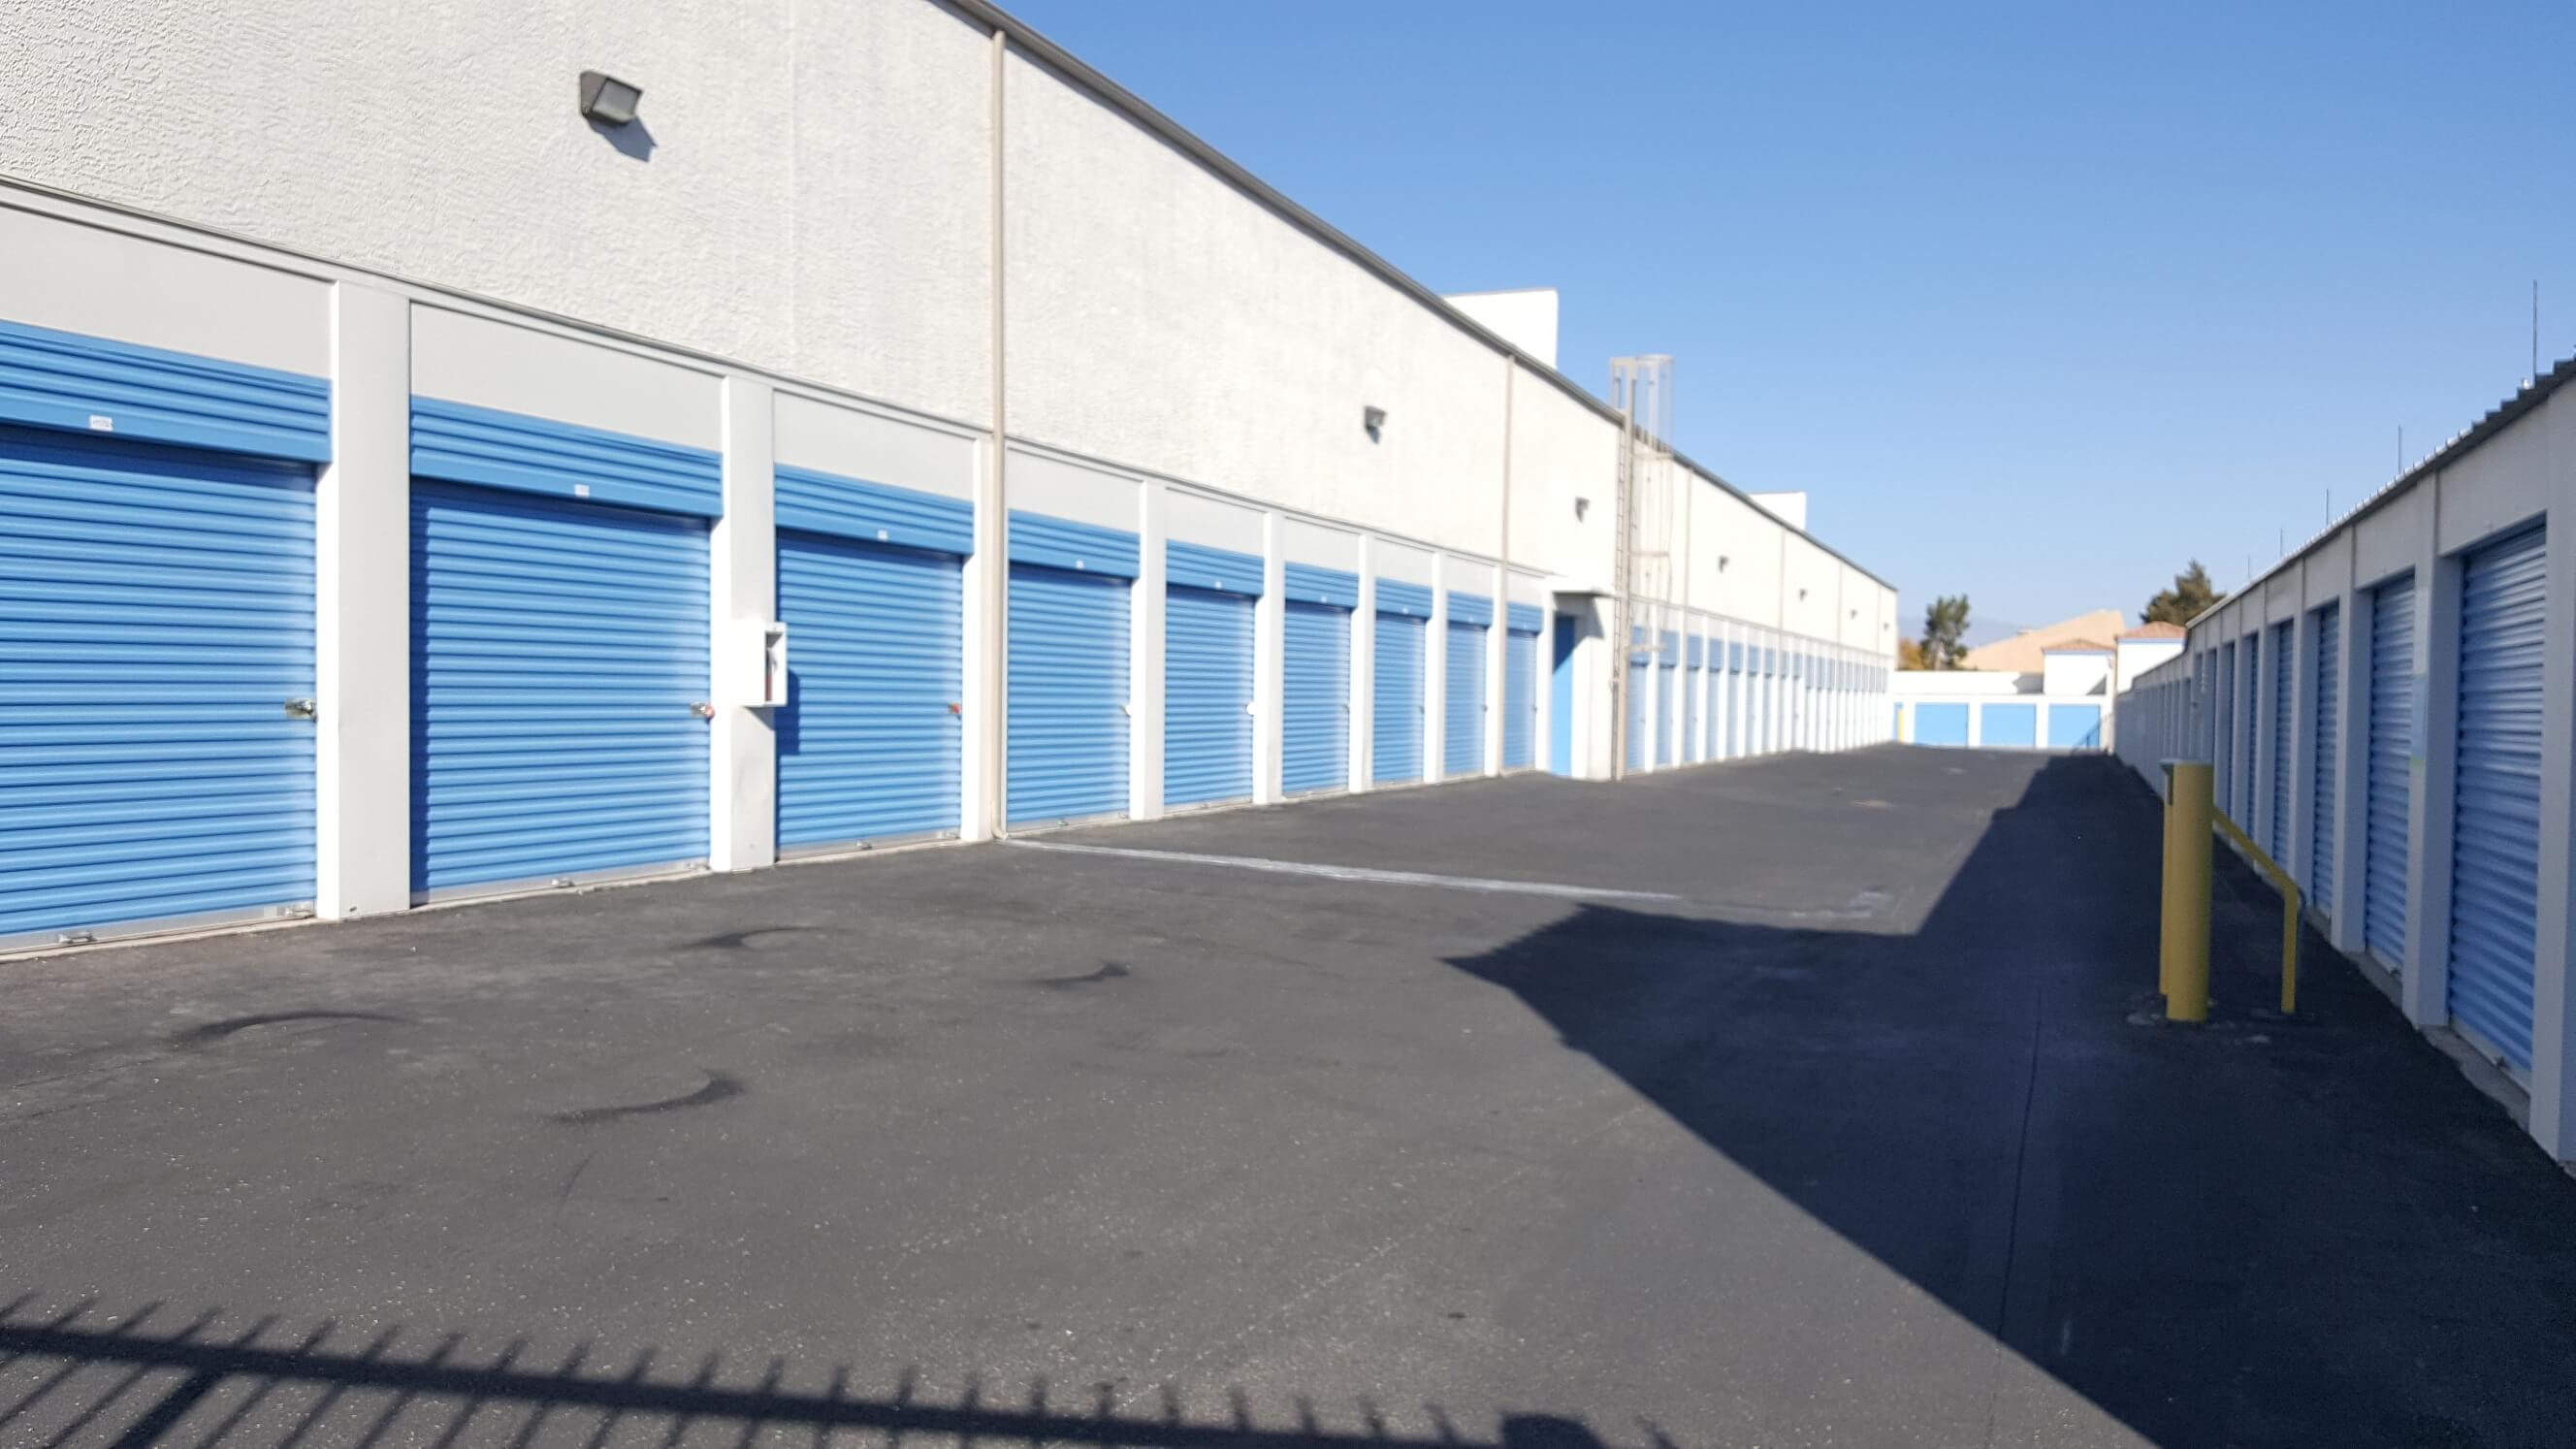 Outside row of storage units at Smart Stop self storage facility located at 4349 South Jones Blvd., Las Vegas Nevada